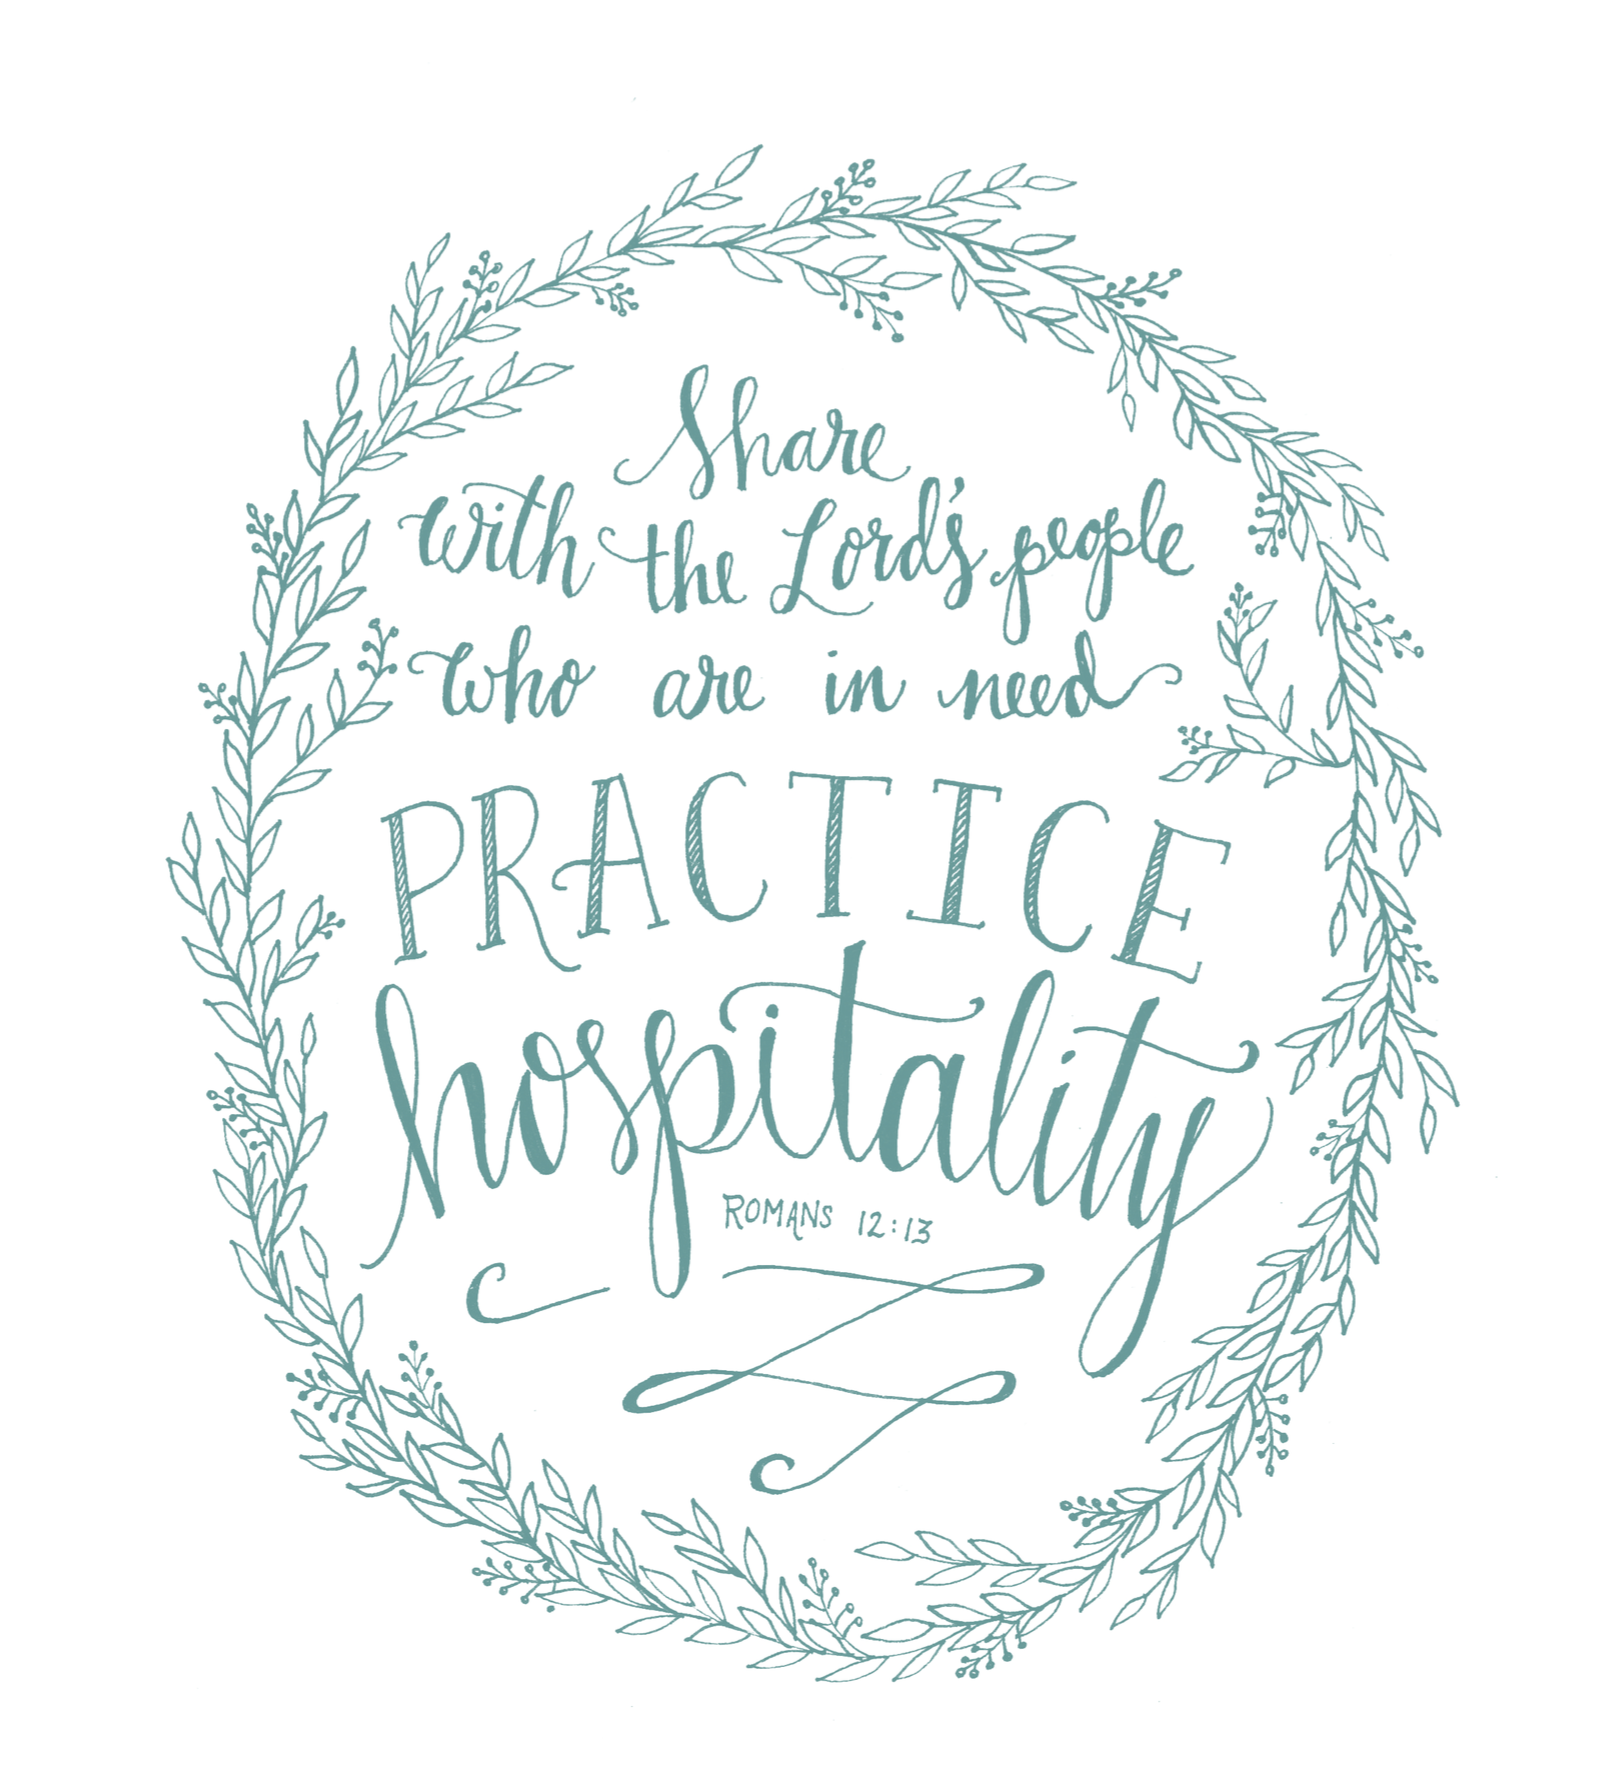 Practice Hospitality A T For You